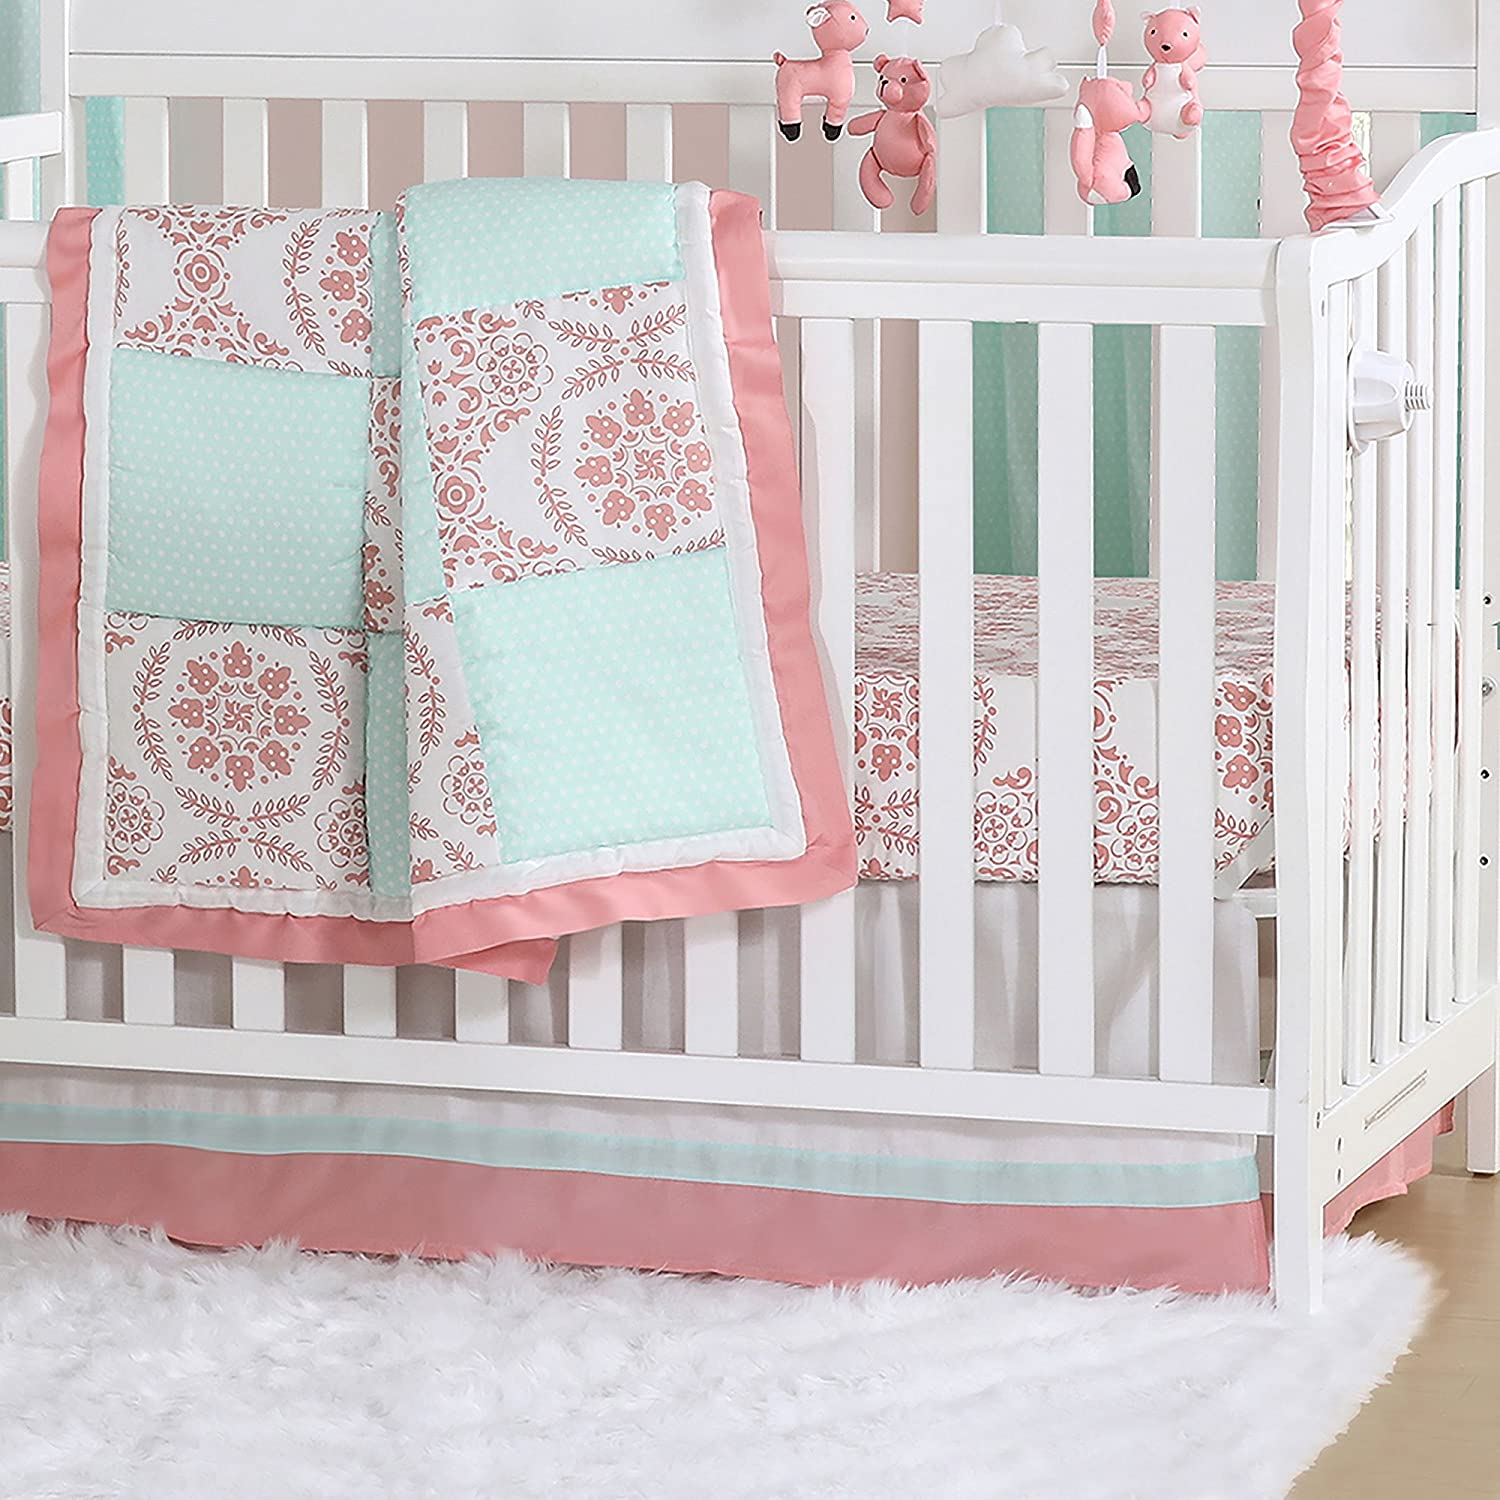 Mint Green and Coral Patchwork 3 Piece Baby Crib Bedding Set by The Peanut Shell by The Peanut Shell   B01KOO9TVC